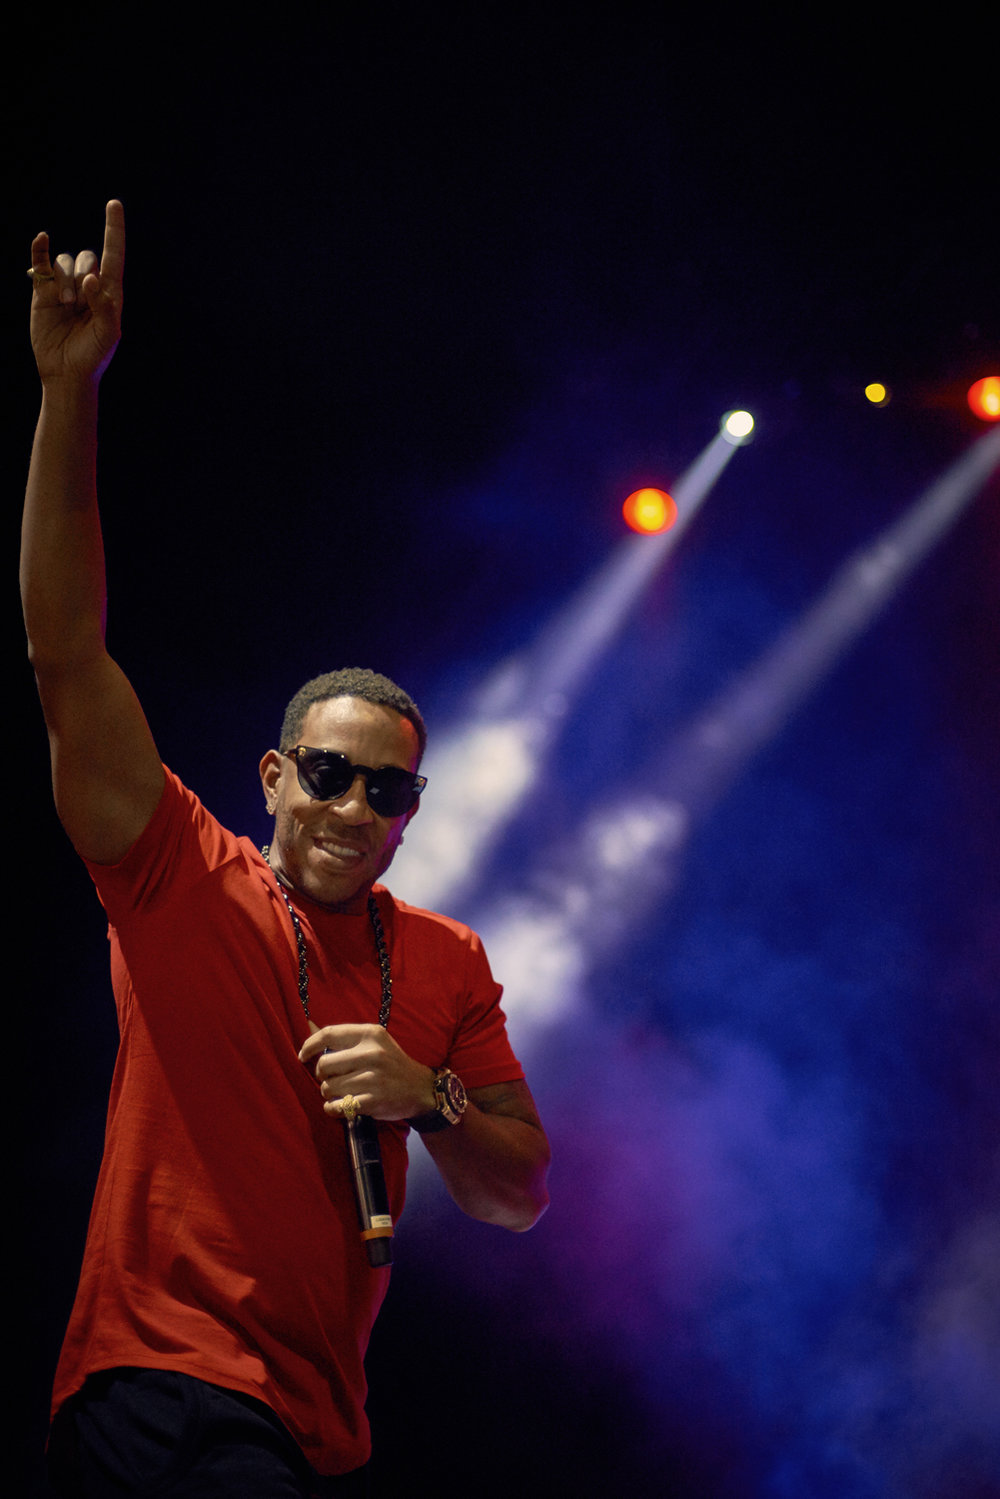 LLL_3056_Ludacris-Live-at-Eventim-Apollo-March-2017.jpg